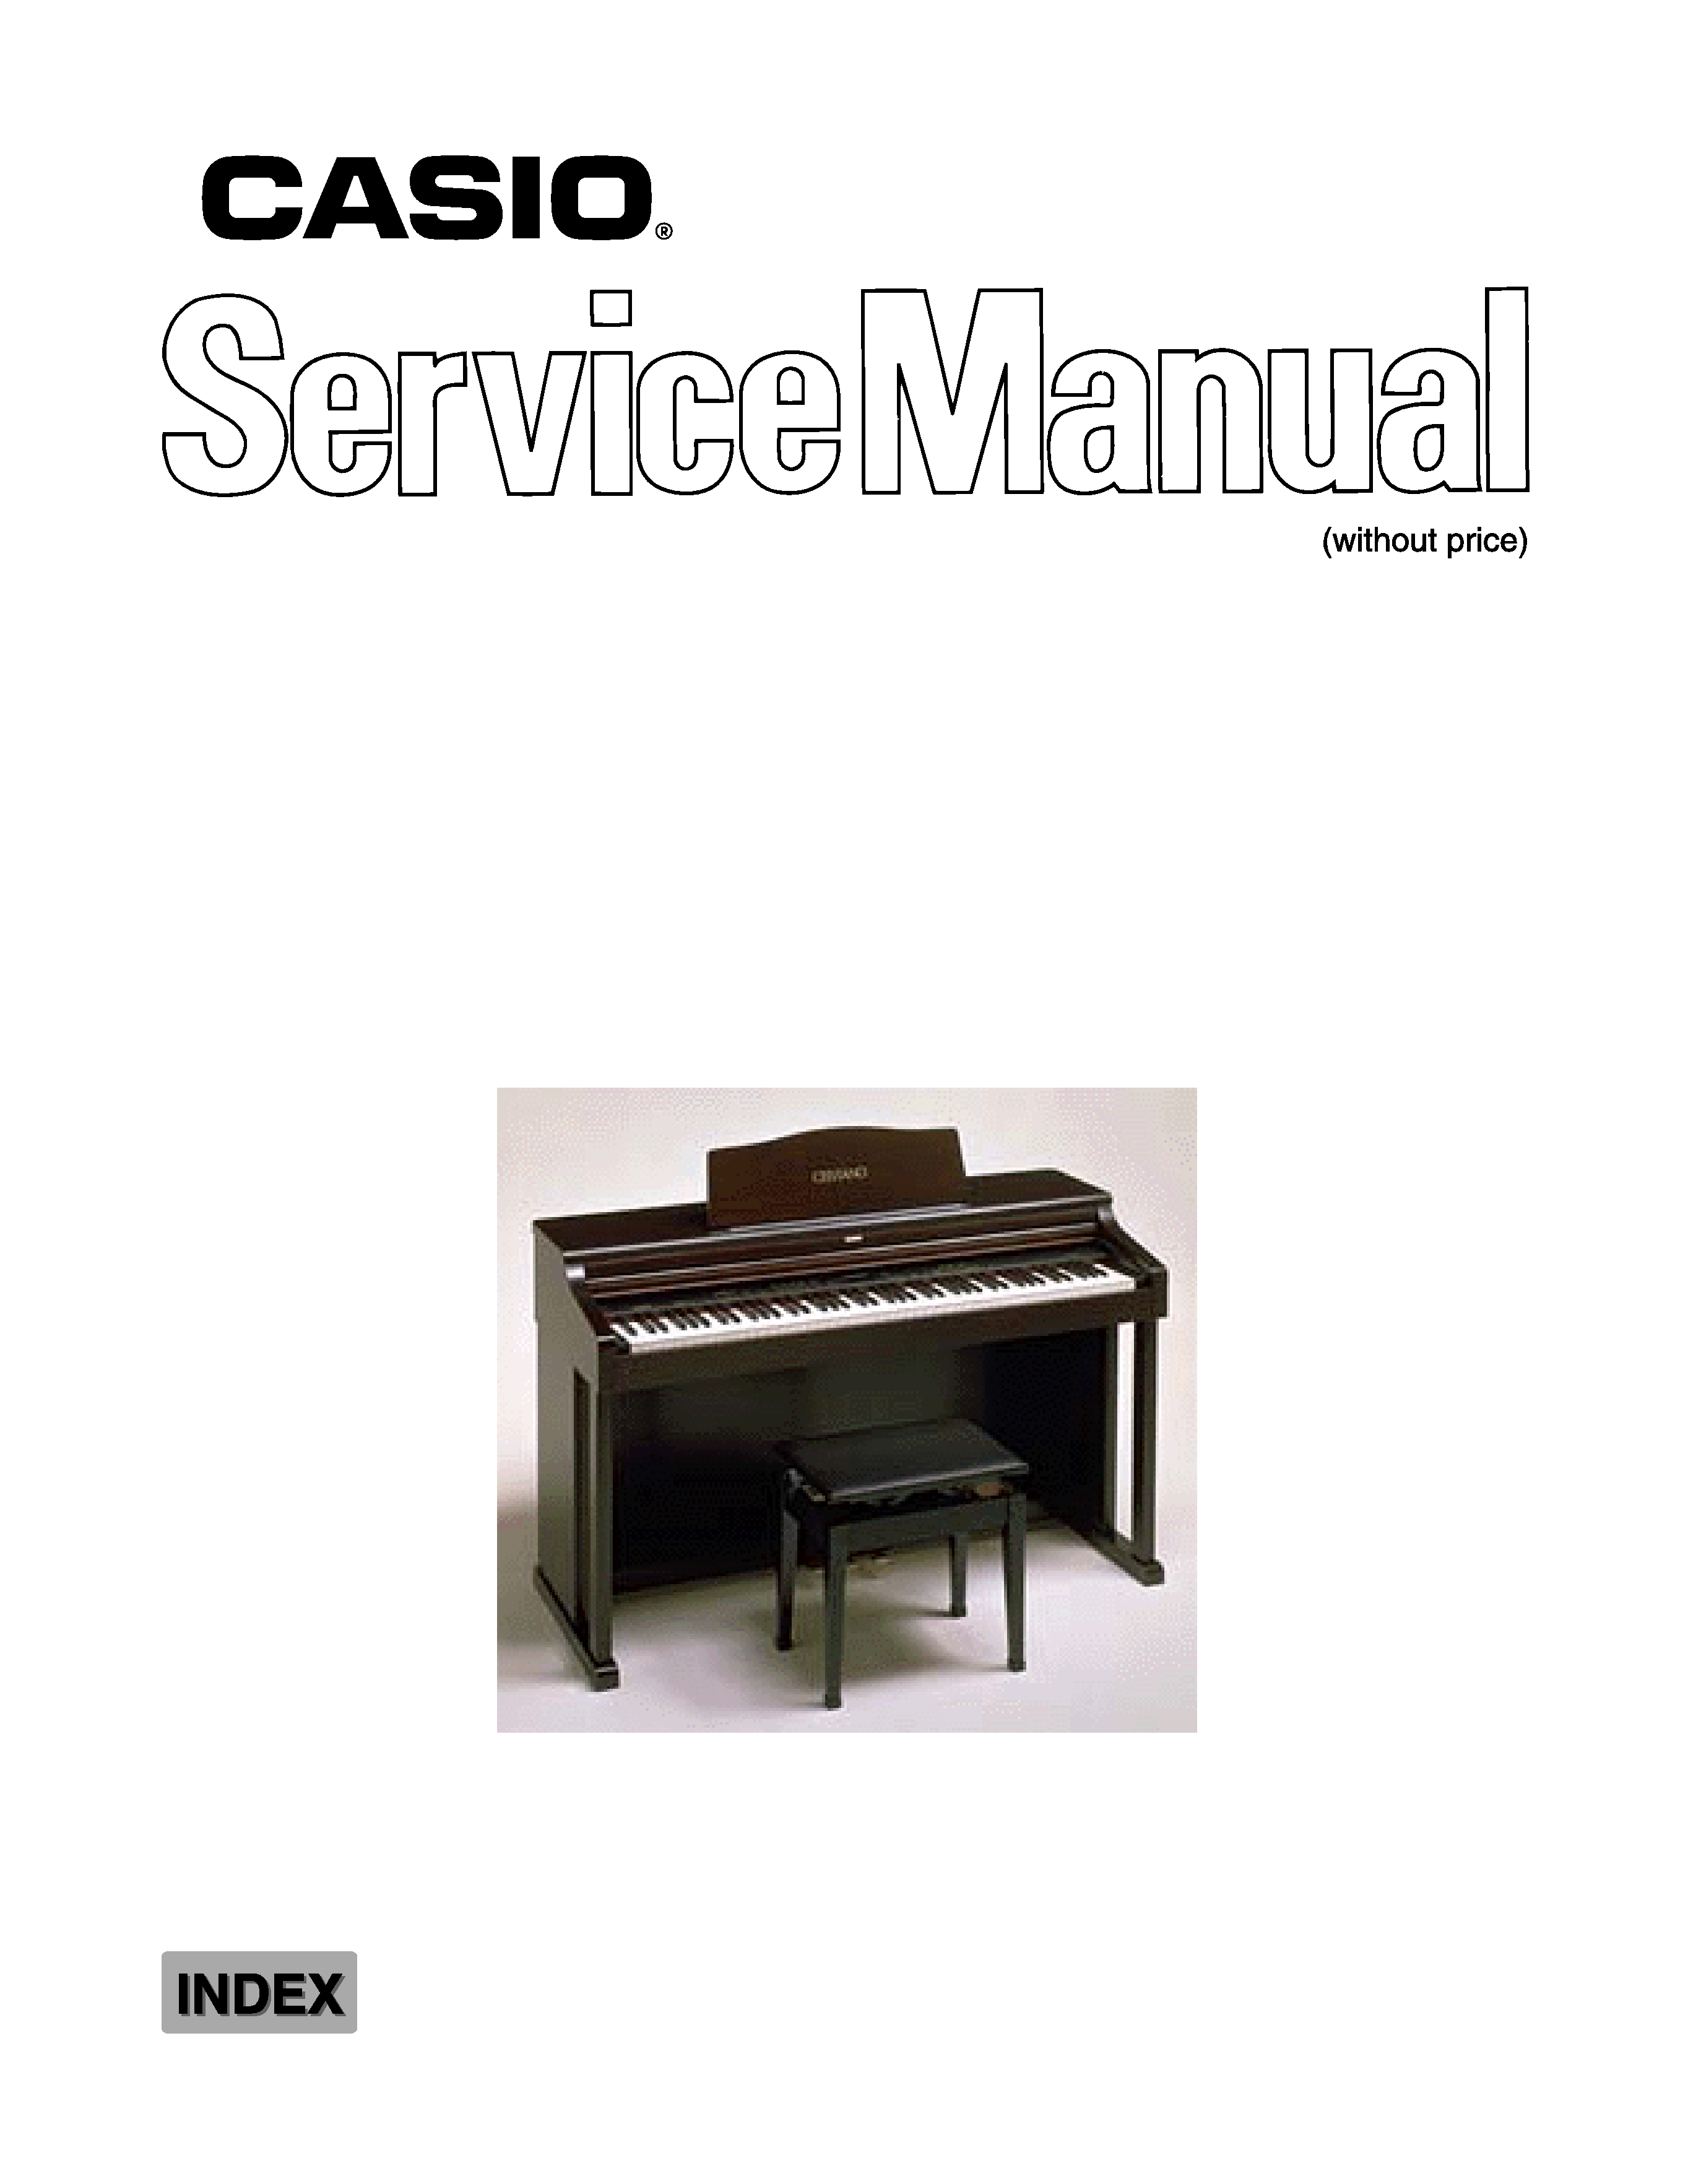 Ap22s Service Manual besides Free Fathers Day Printables further 15 Pin Vga To Rca Wiring Diagram moreover 10 Frequency To Voltage Converter likewise Lightning In The Sky. on og to digital circuit diagram